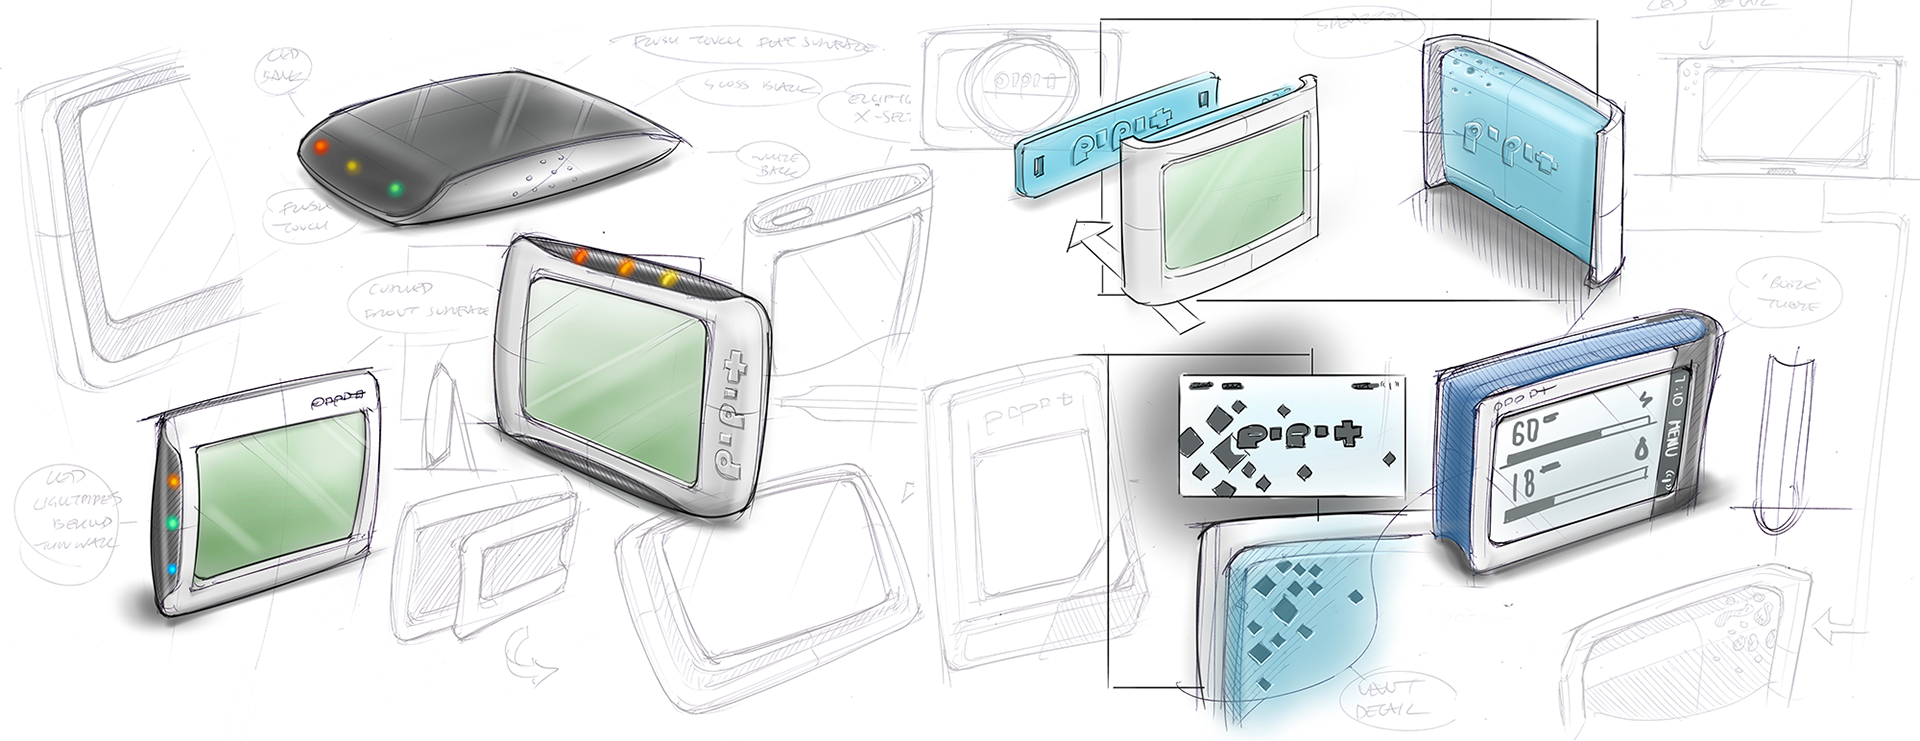 With electronic design underway and target costs defined, we began exploring product form in a range of sketch concepts. We worked to find an appealing style that also allowed the product to stand, to be wall-mounted, and to include indicator LEDs to draw user attention